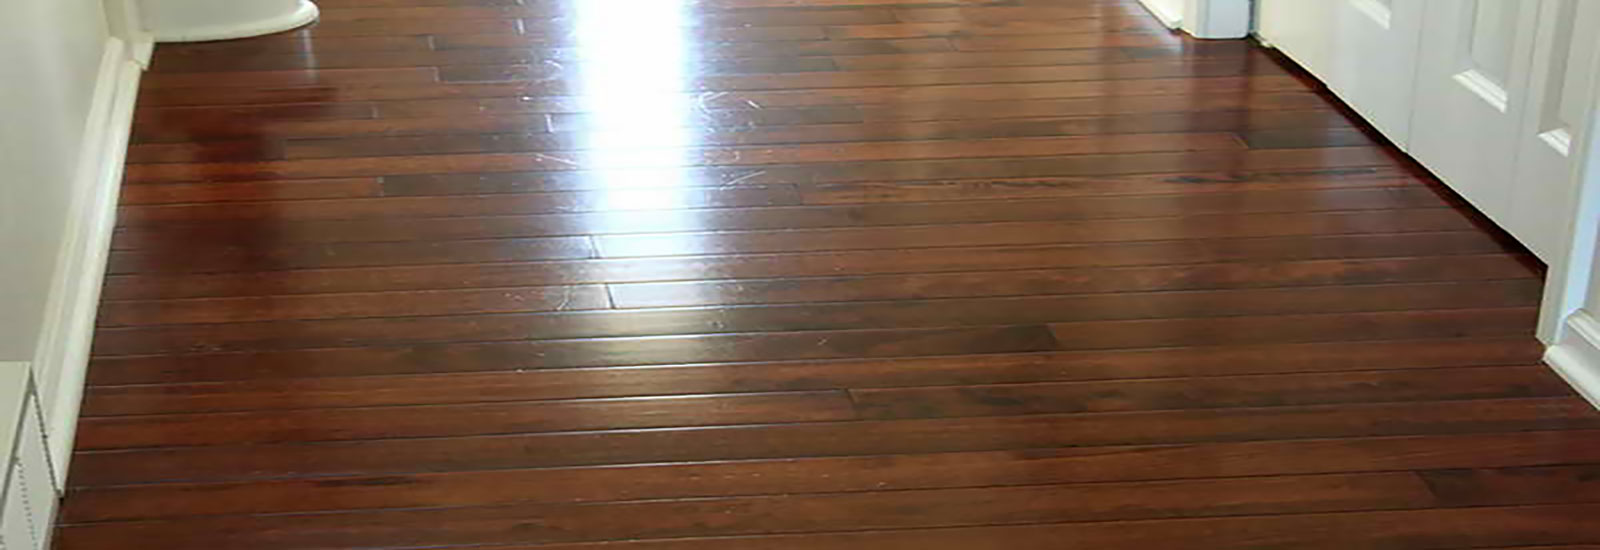 W robin flooring contractors for Laminate flooring limerick